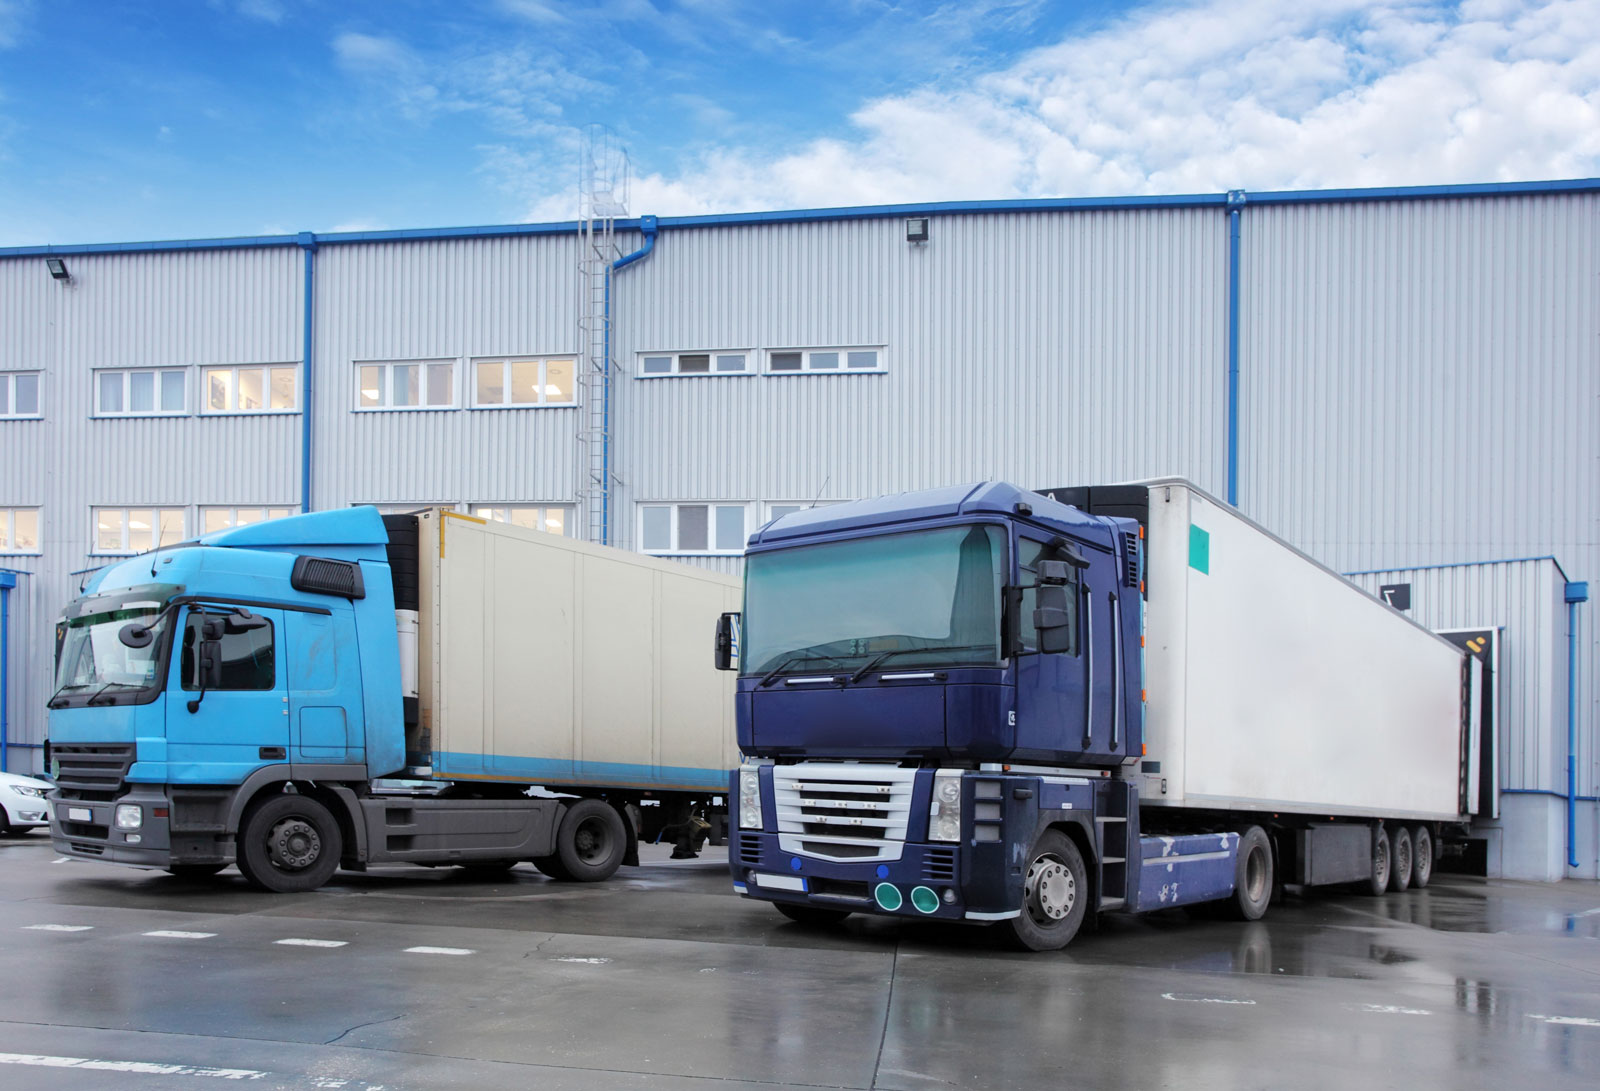 transport trucks at warehouse